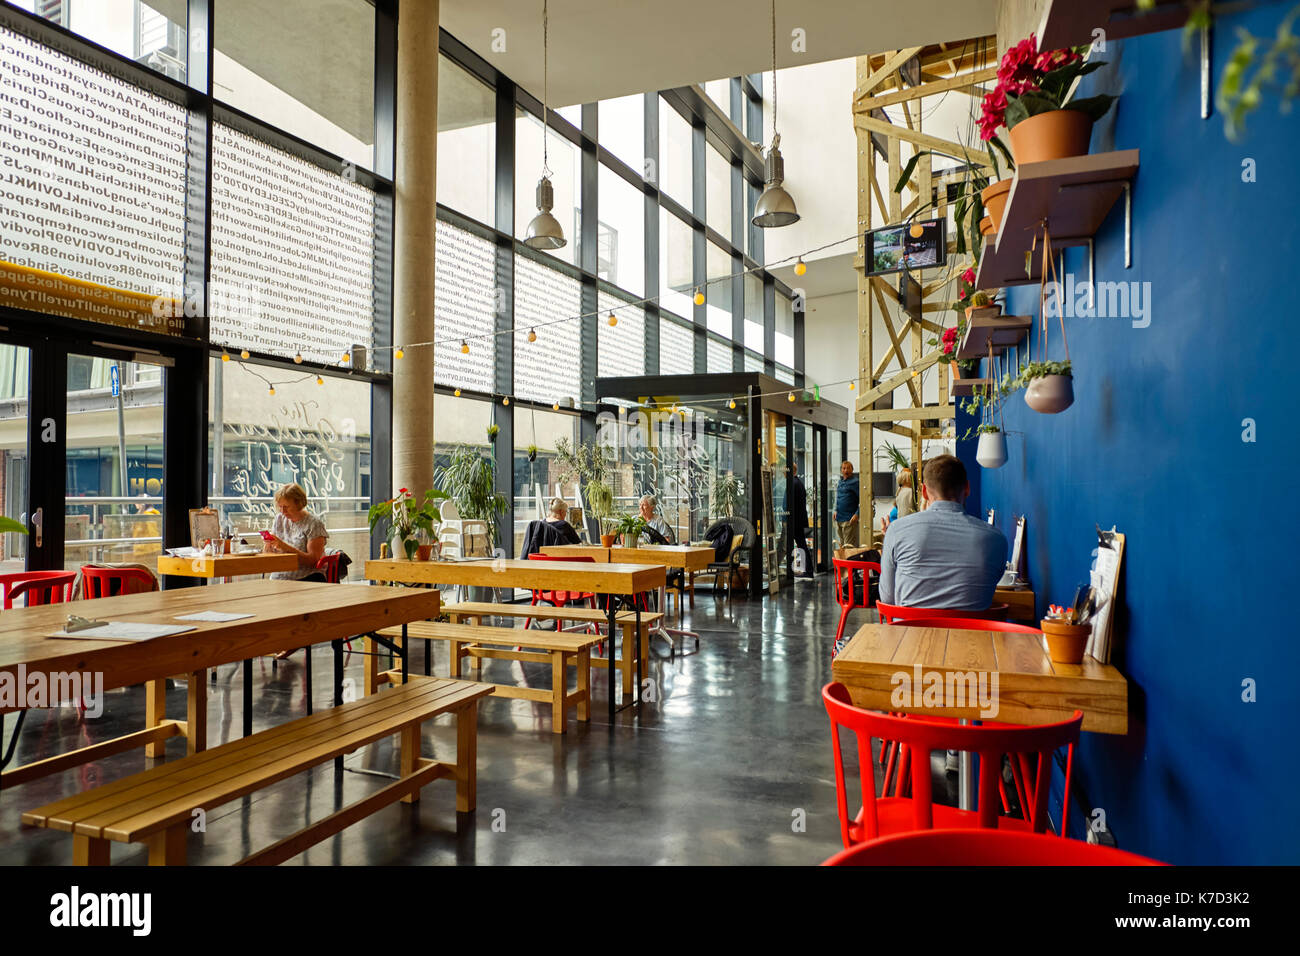 Cafe at FACT in Bold Street, Liverpool - Stock Image